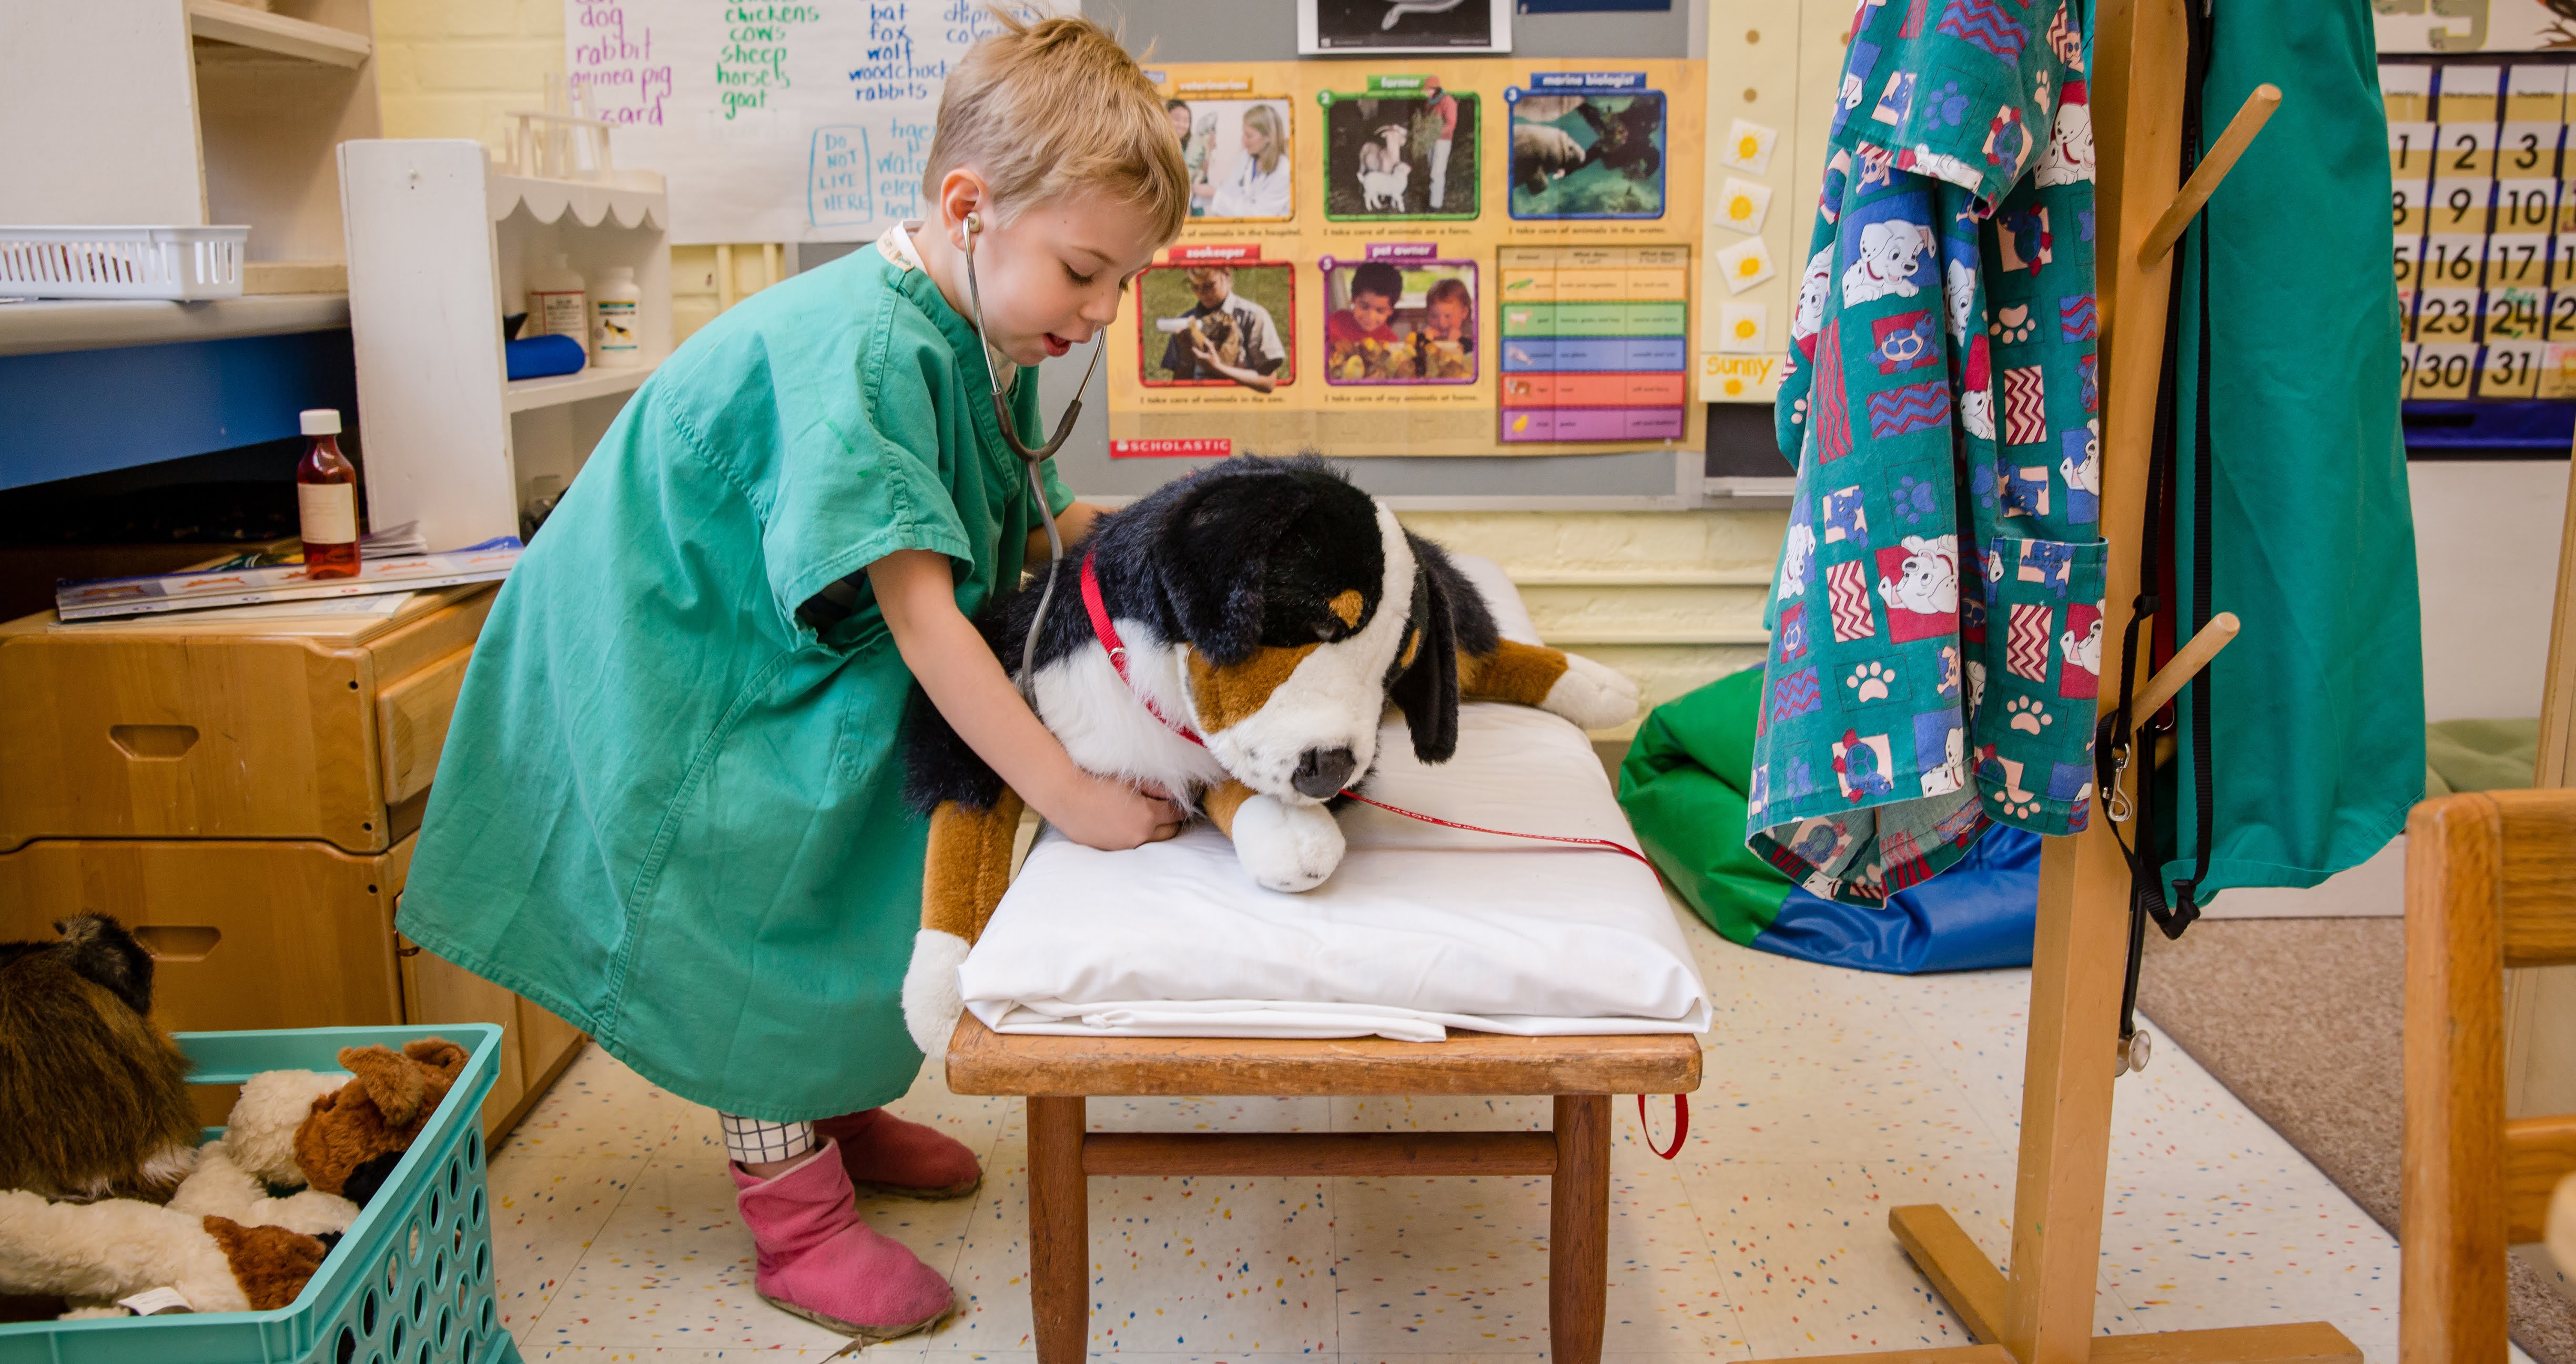 A student wearing scrubs examines a stuffed animal with a stethescope